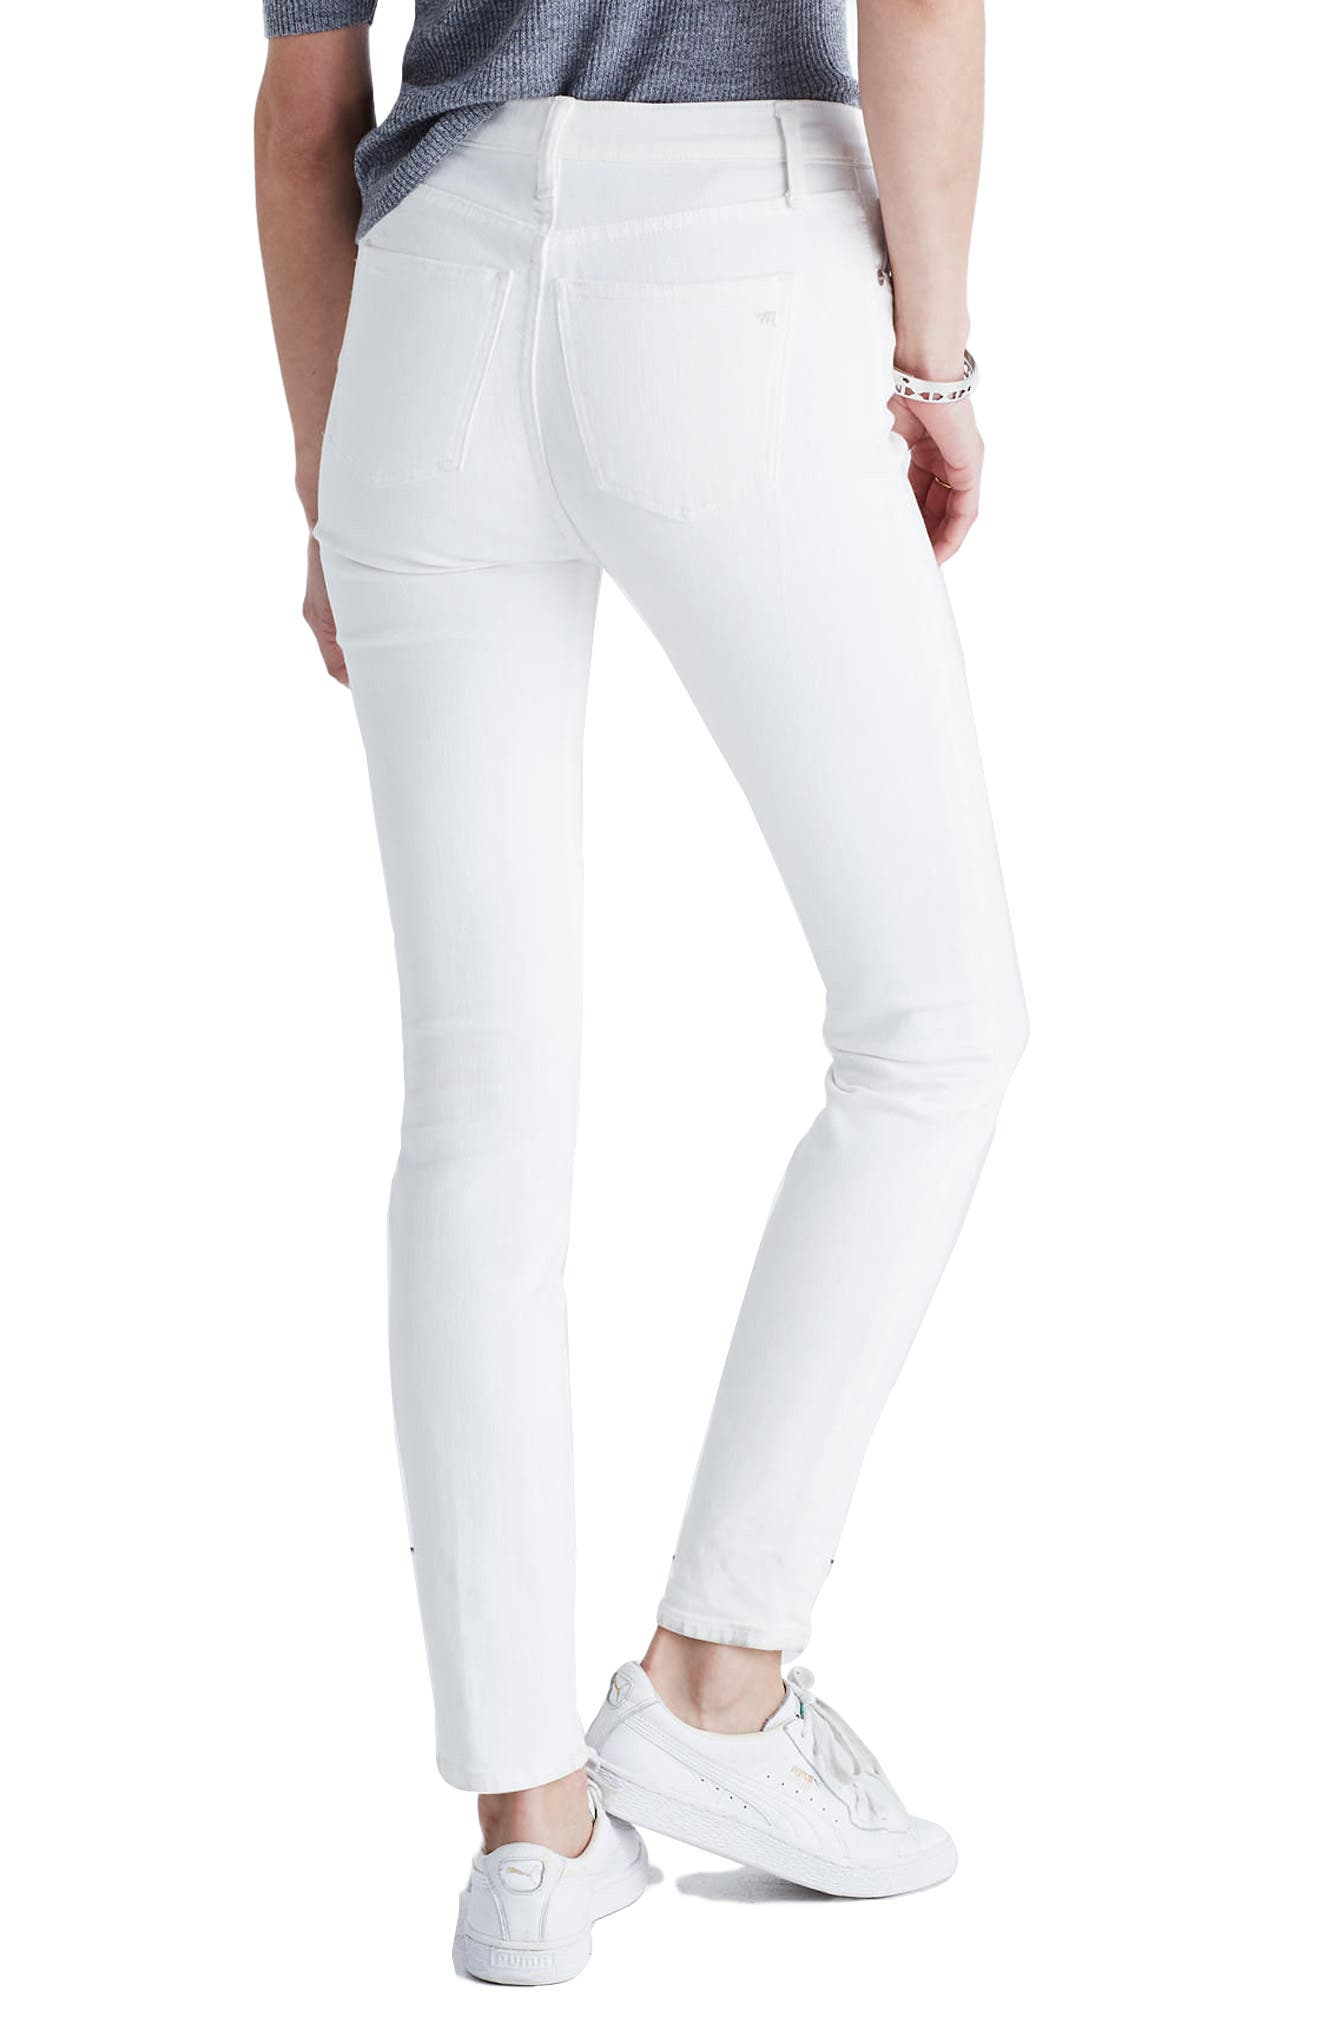 MADEWELL,                             9-Inch High-Rise Skinny Jeans,                             Alternate thumbnail 2, color,                             100